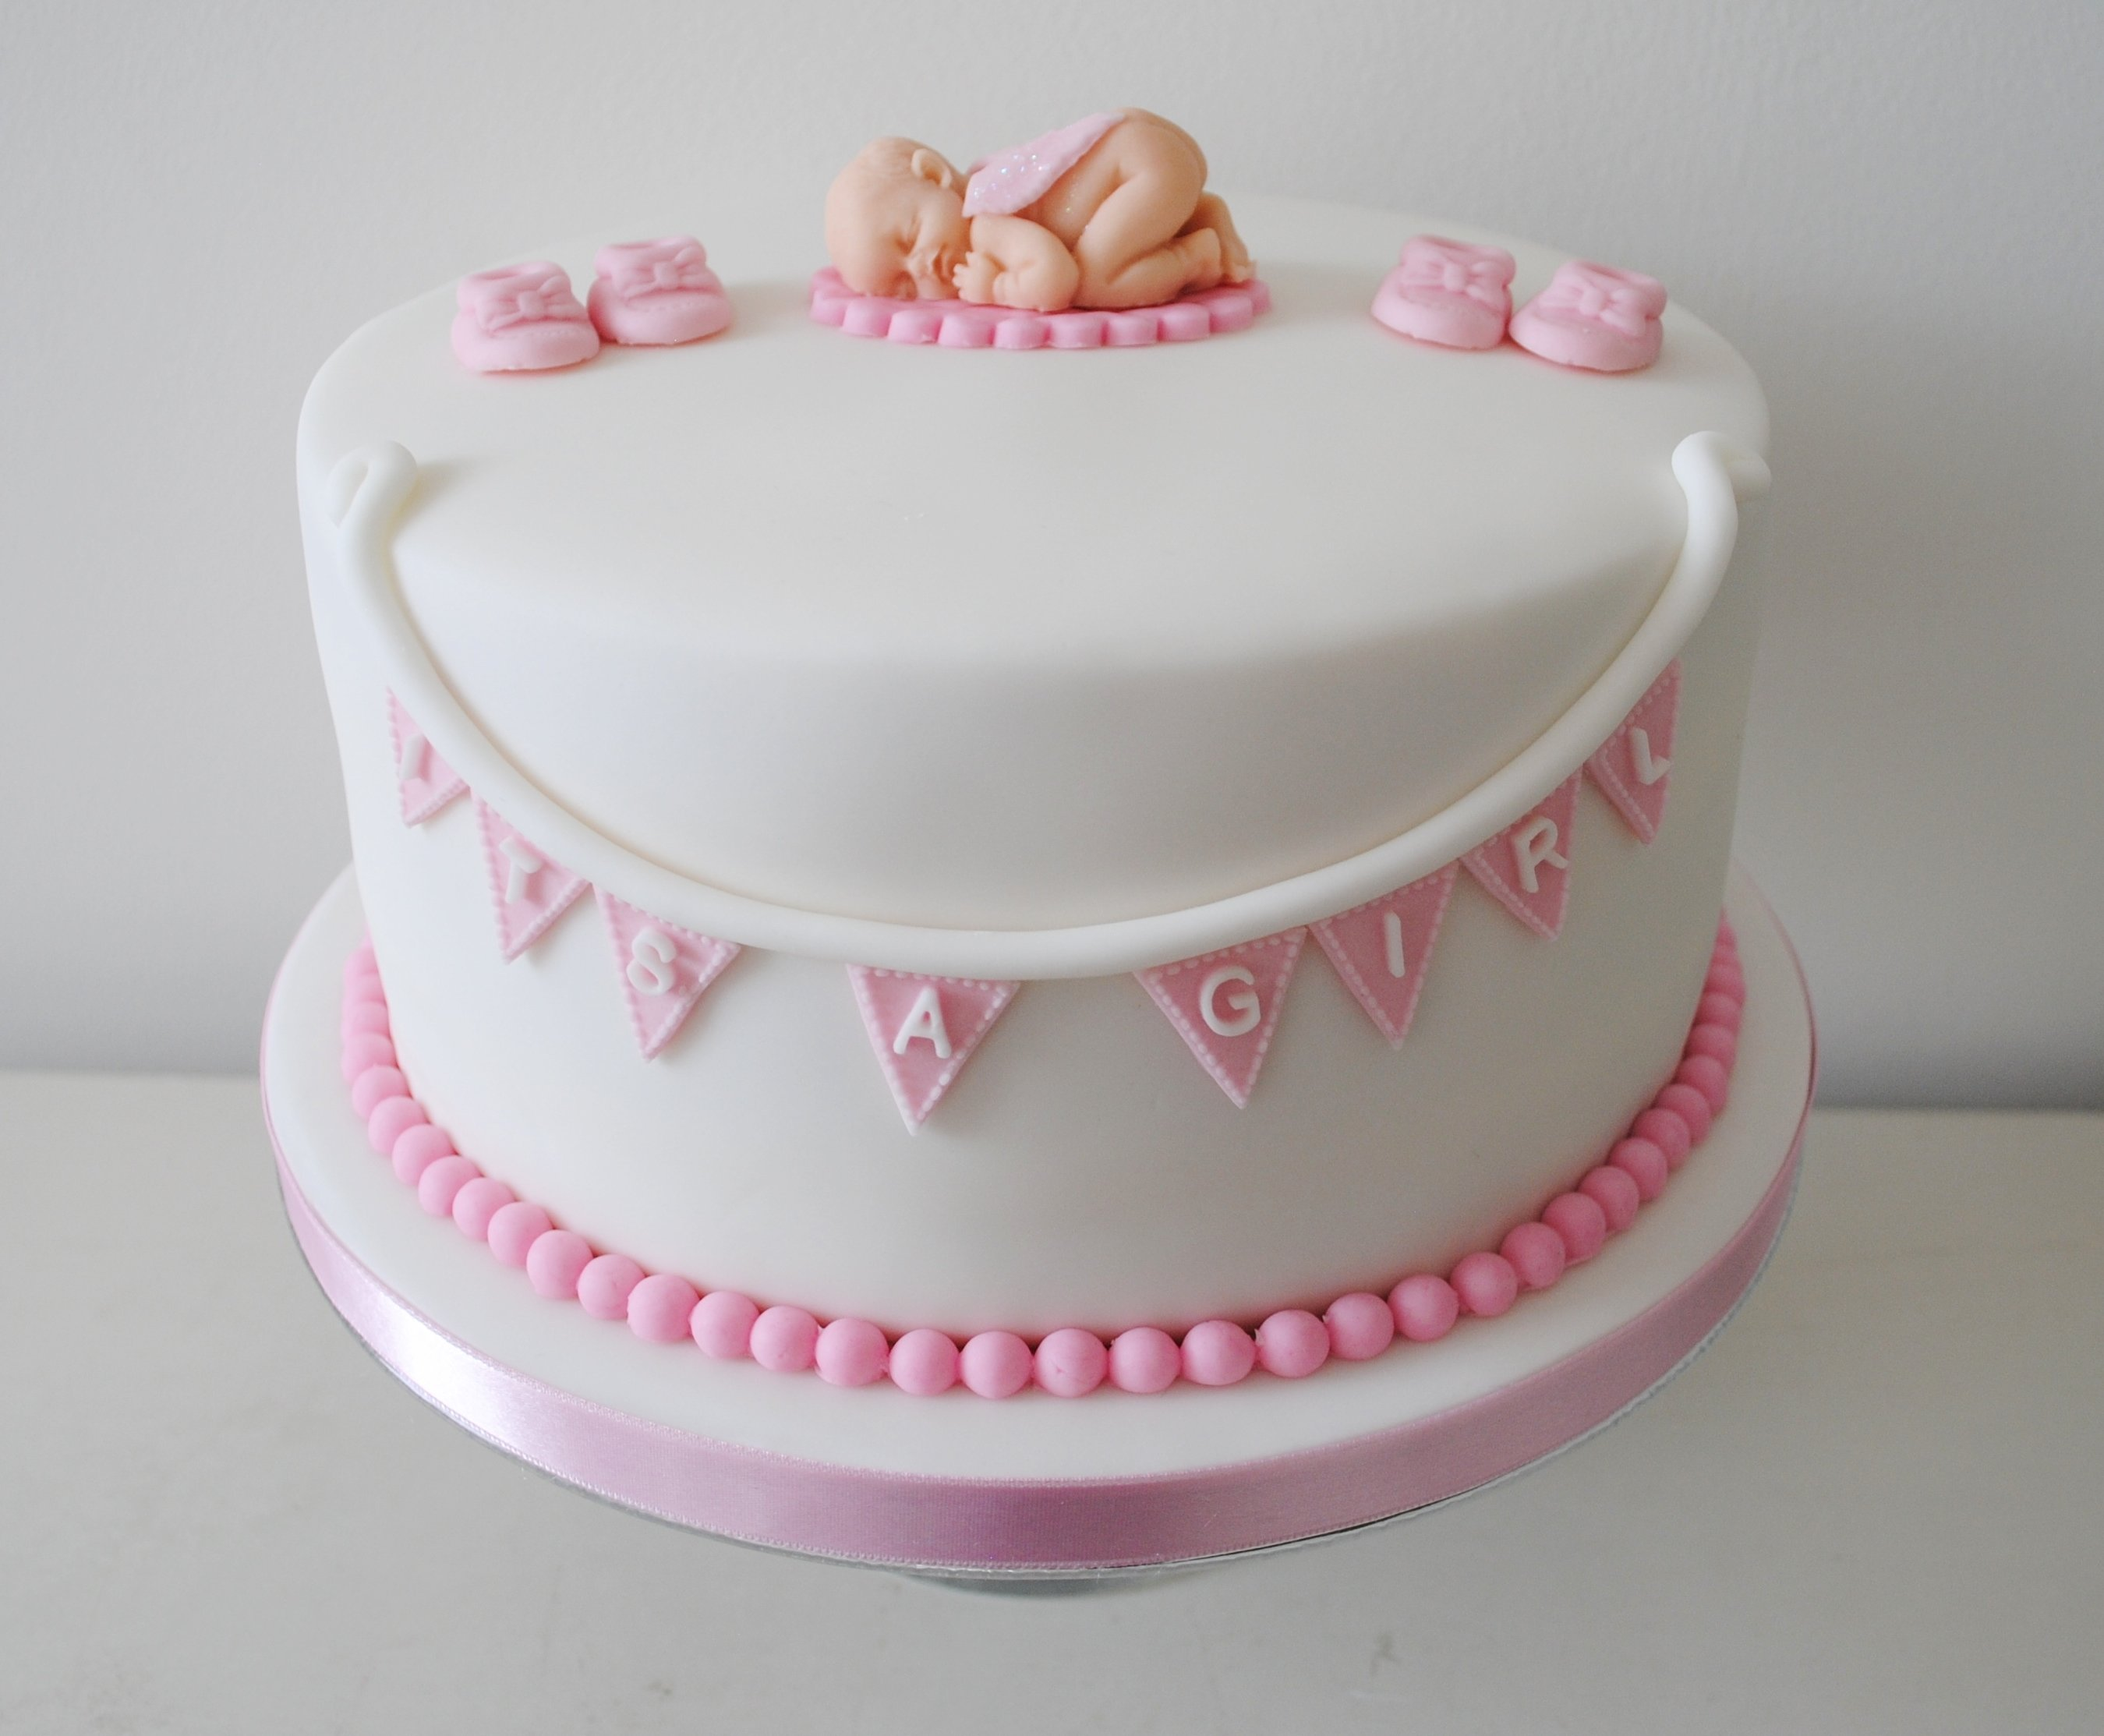 10 Perfect Baby Girl Shower Cake Ideas frightening baby shower cake ideasl pink unique pop cute ideas girl 2020